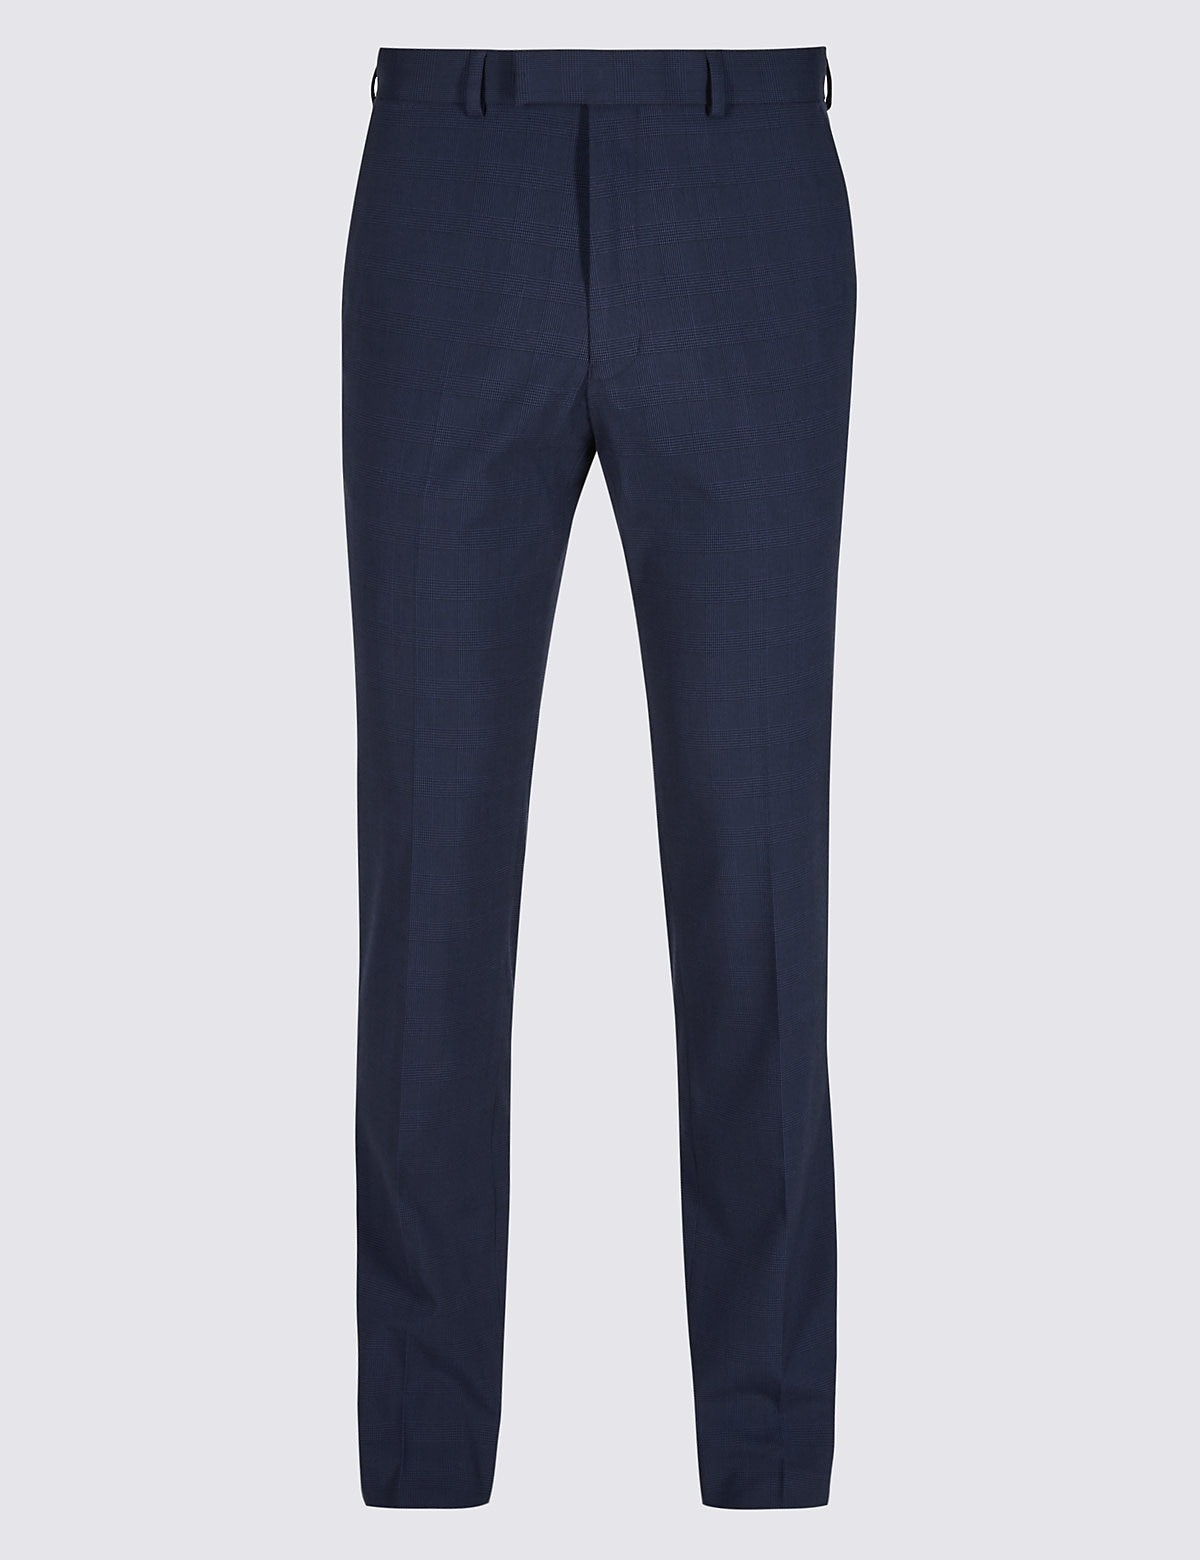 Marks & Spencer Indigo Checked Slim Fit Trousers